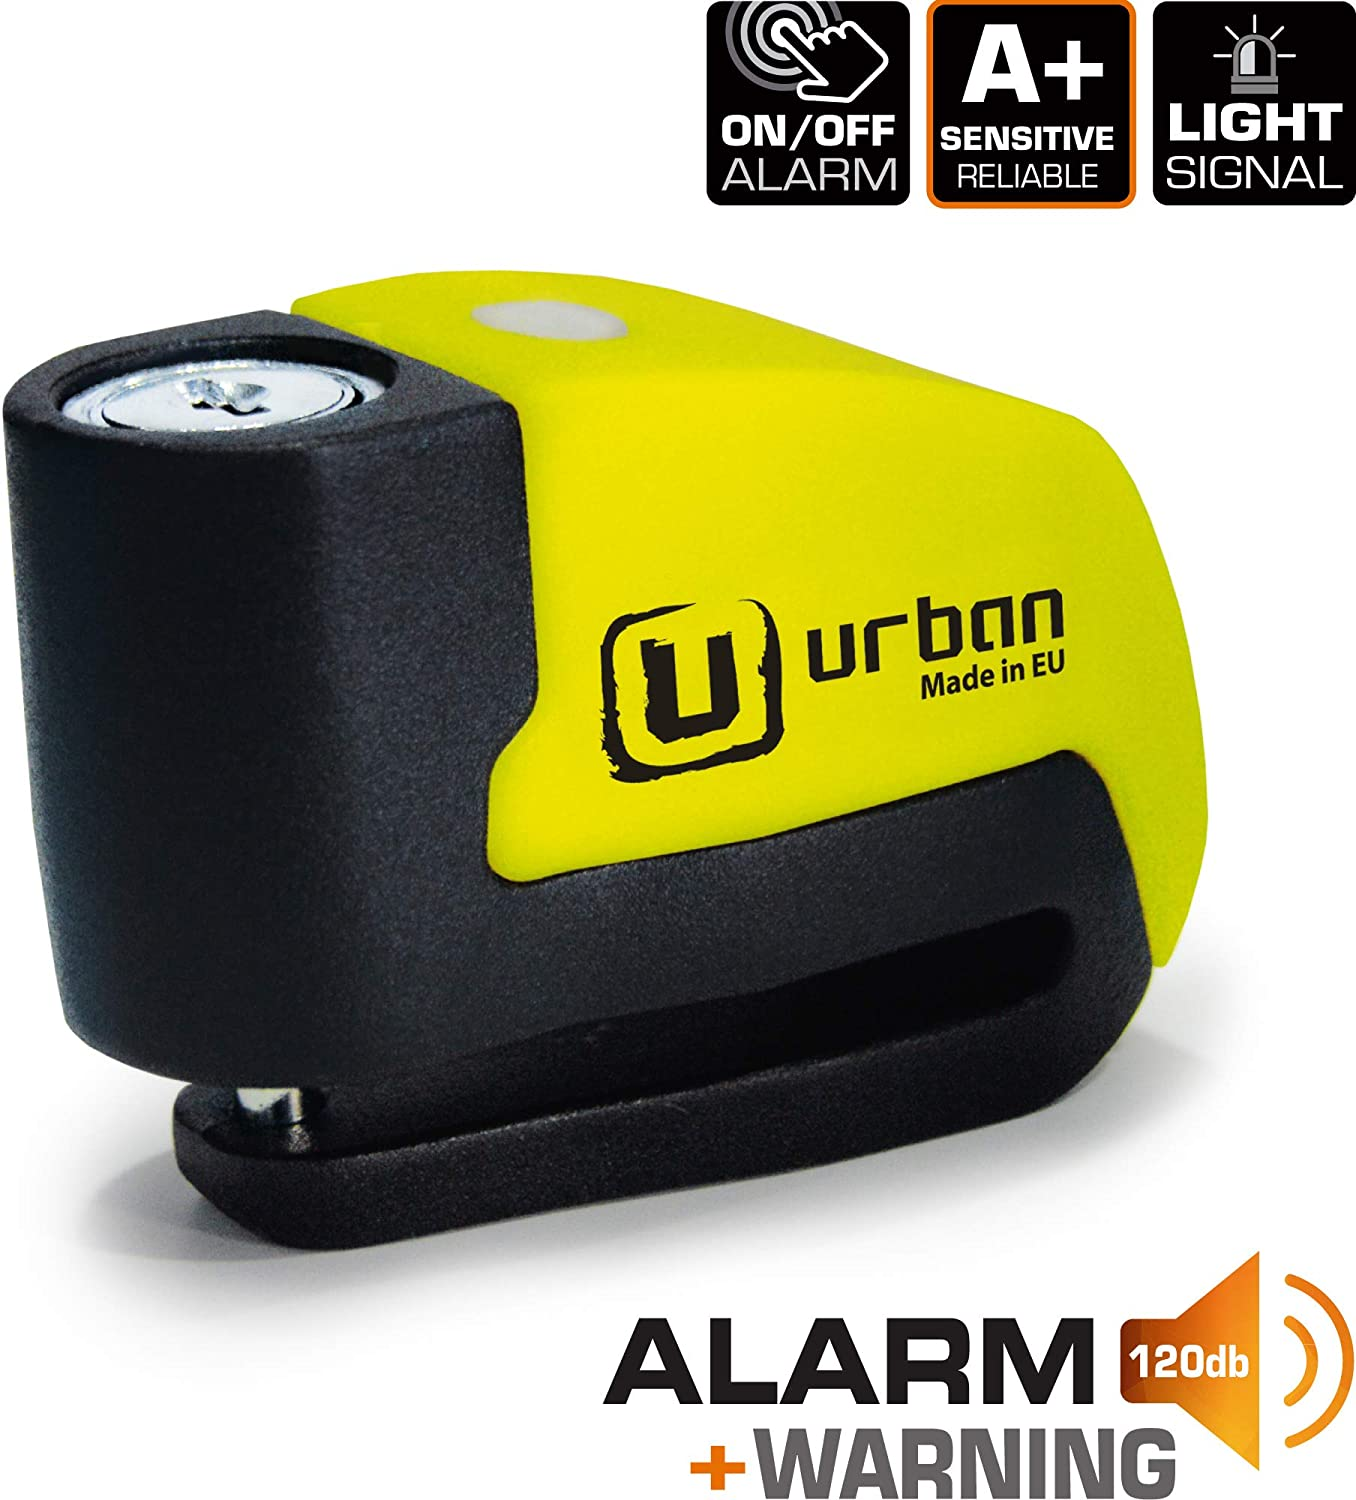 Urban Security UR6 Candado Antirrobo Disco con Alarma+Warning ...